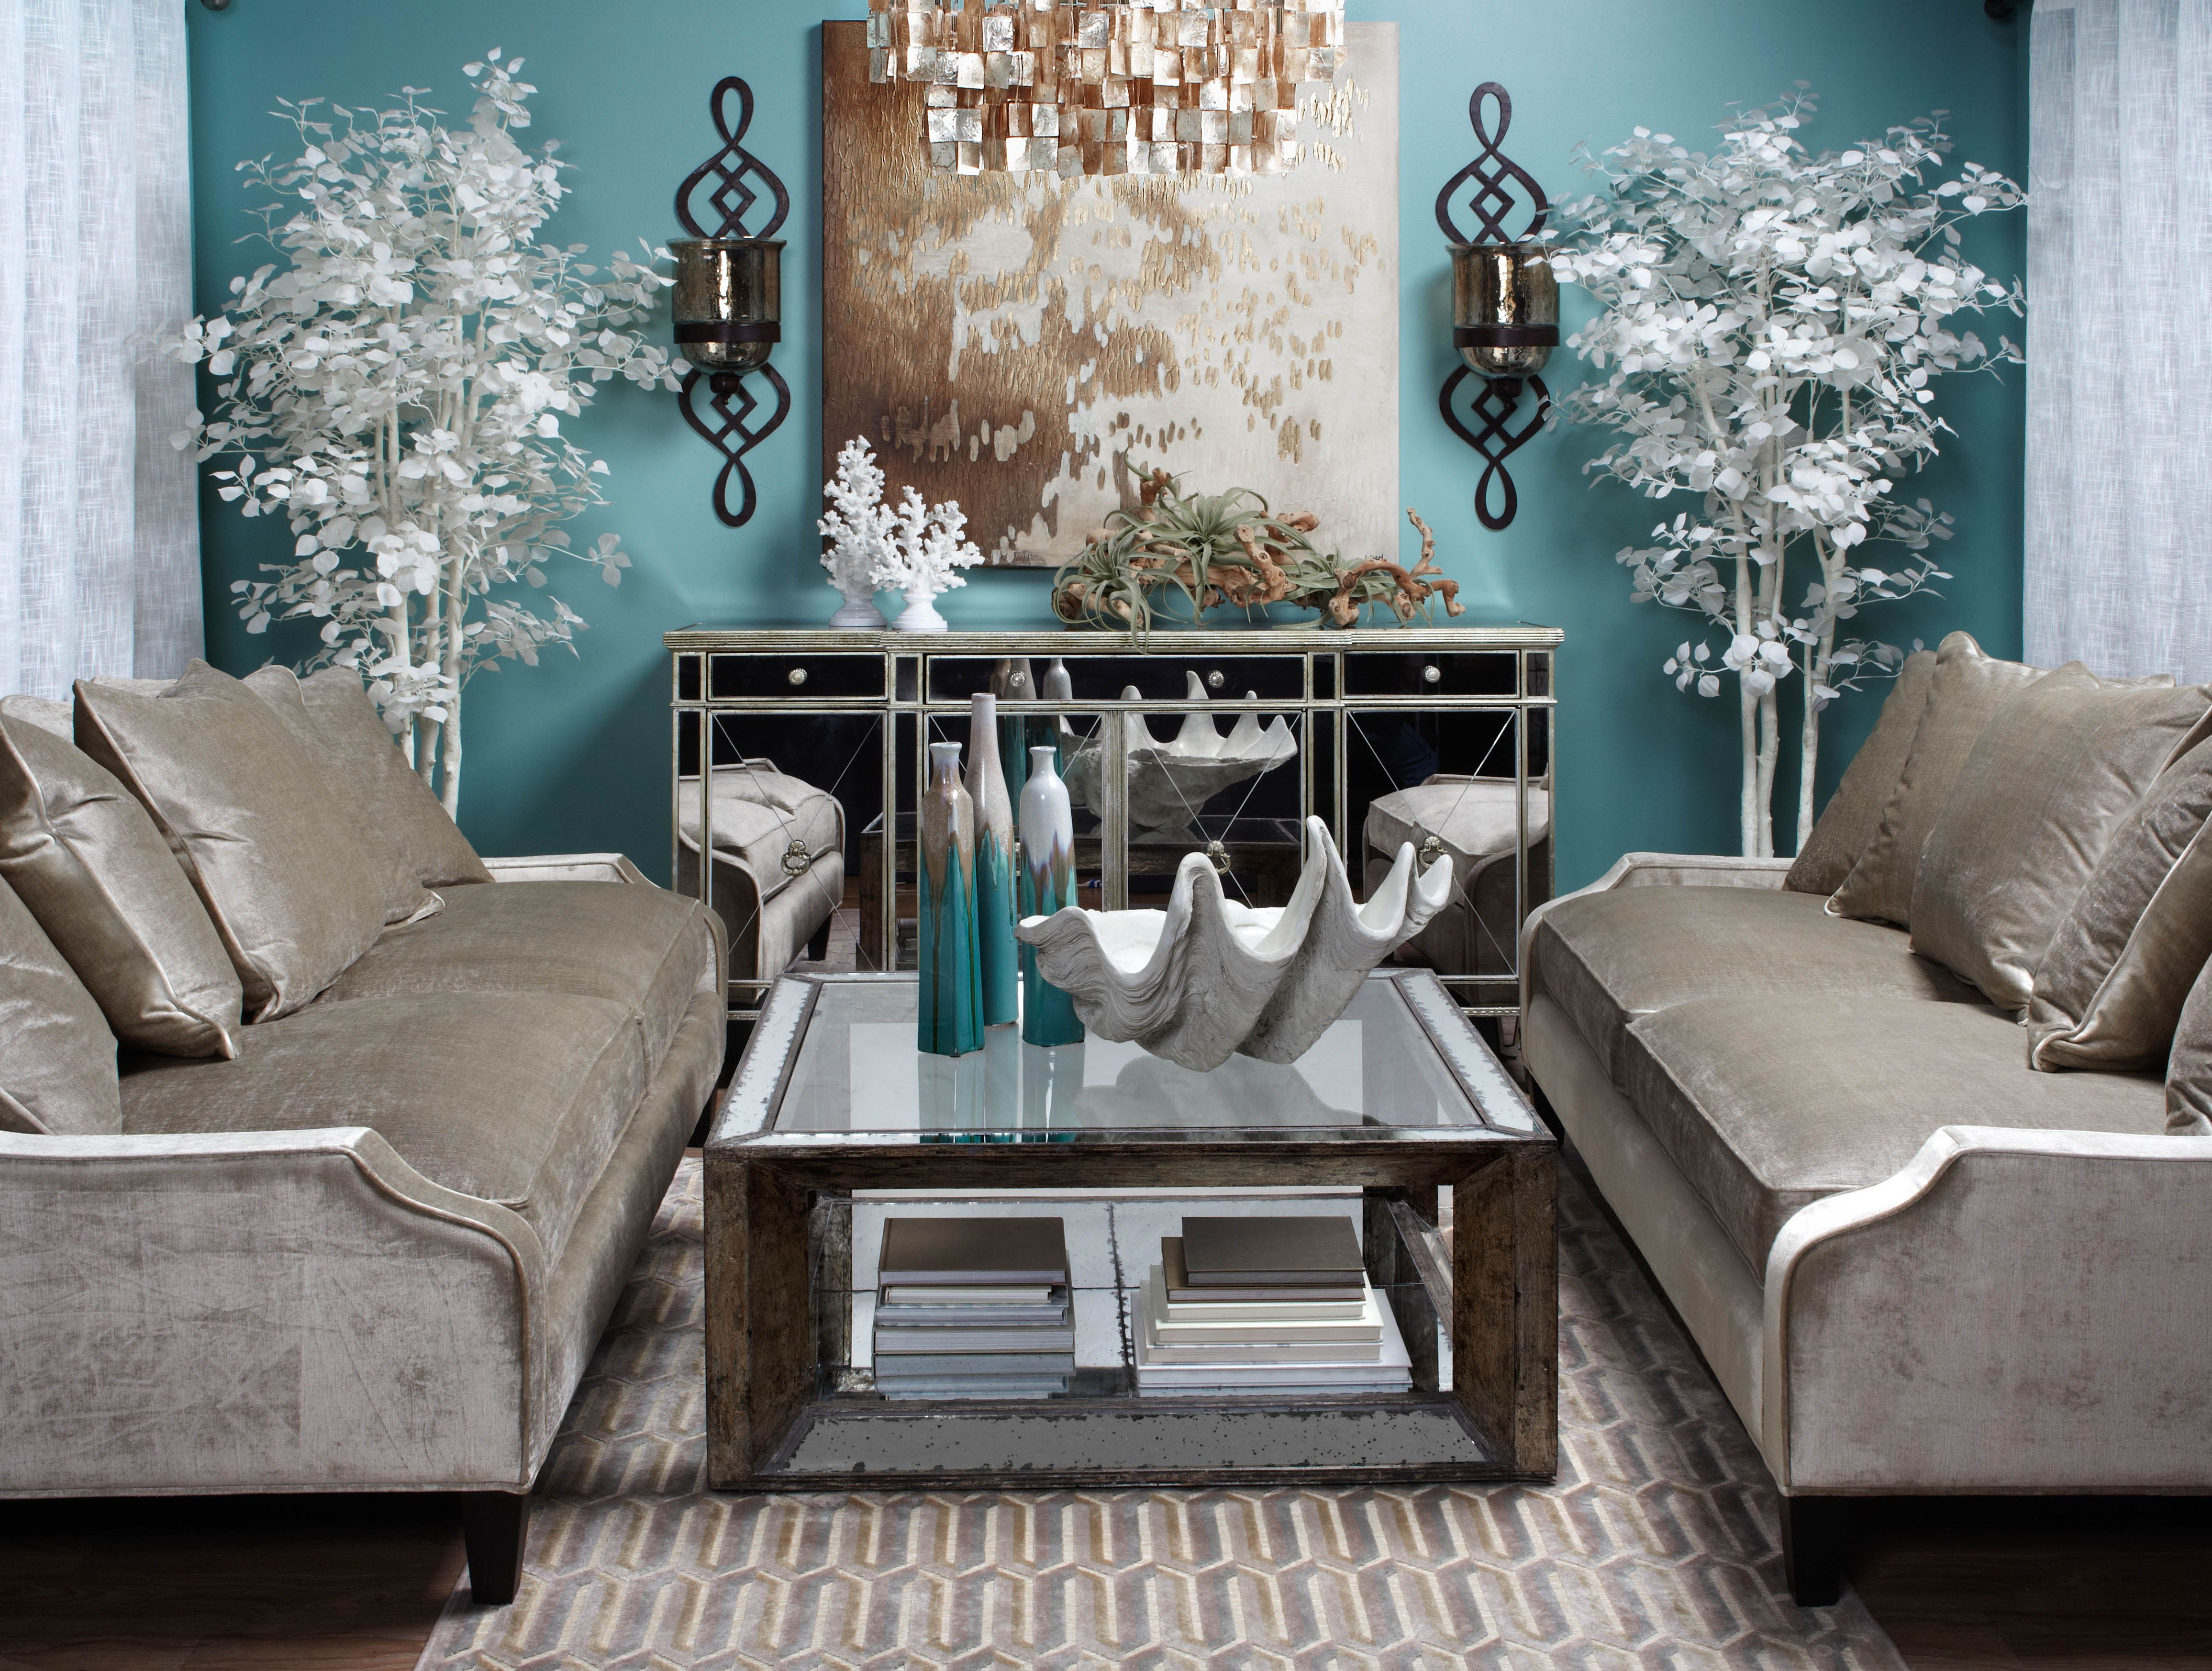 Pin By Lolliemason On Zgallerie Wish List Turquoise Living Room Decor Living Room Turquoise Home Living Room #turquoise #living #room #chair